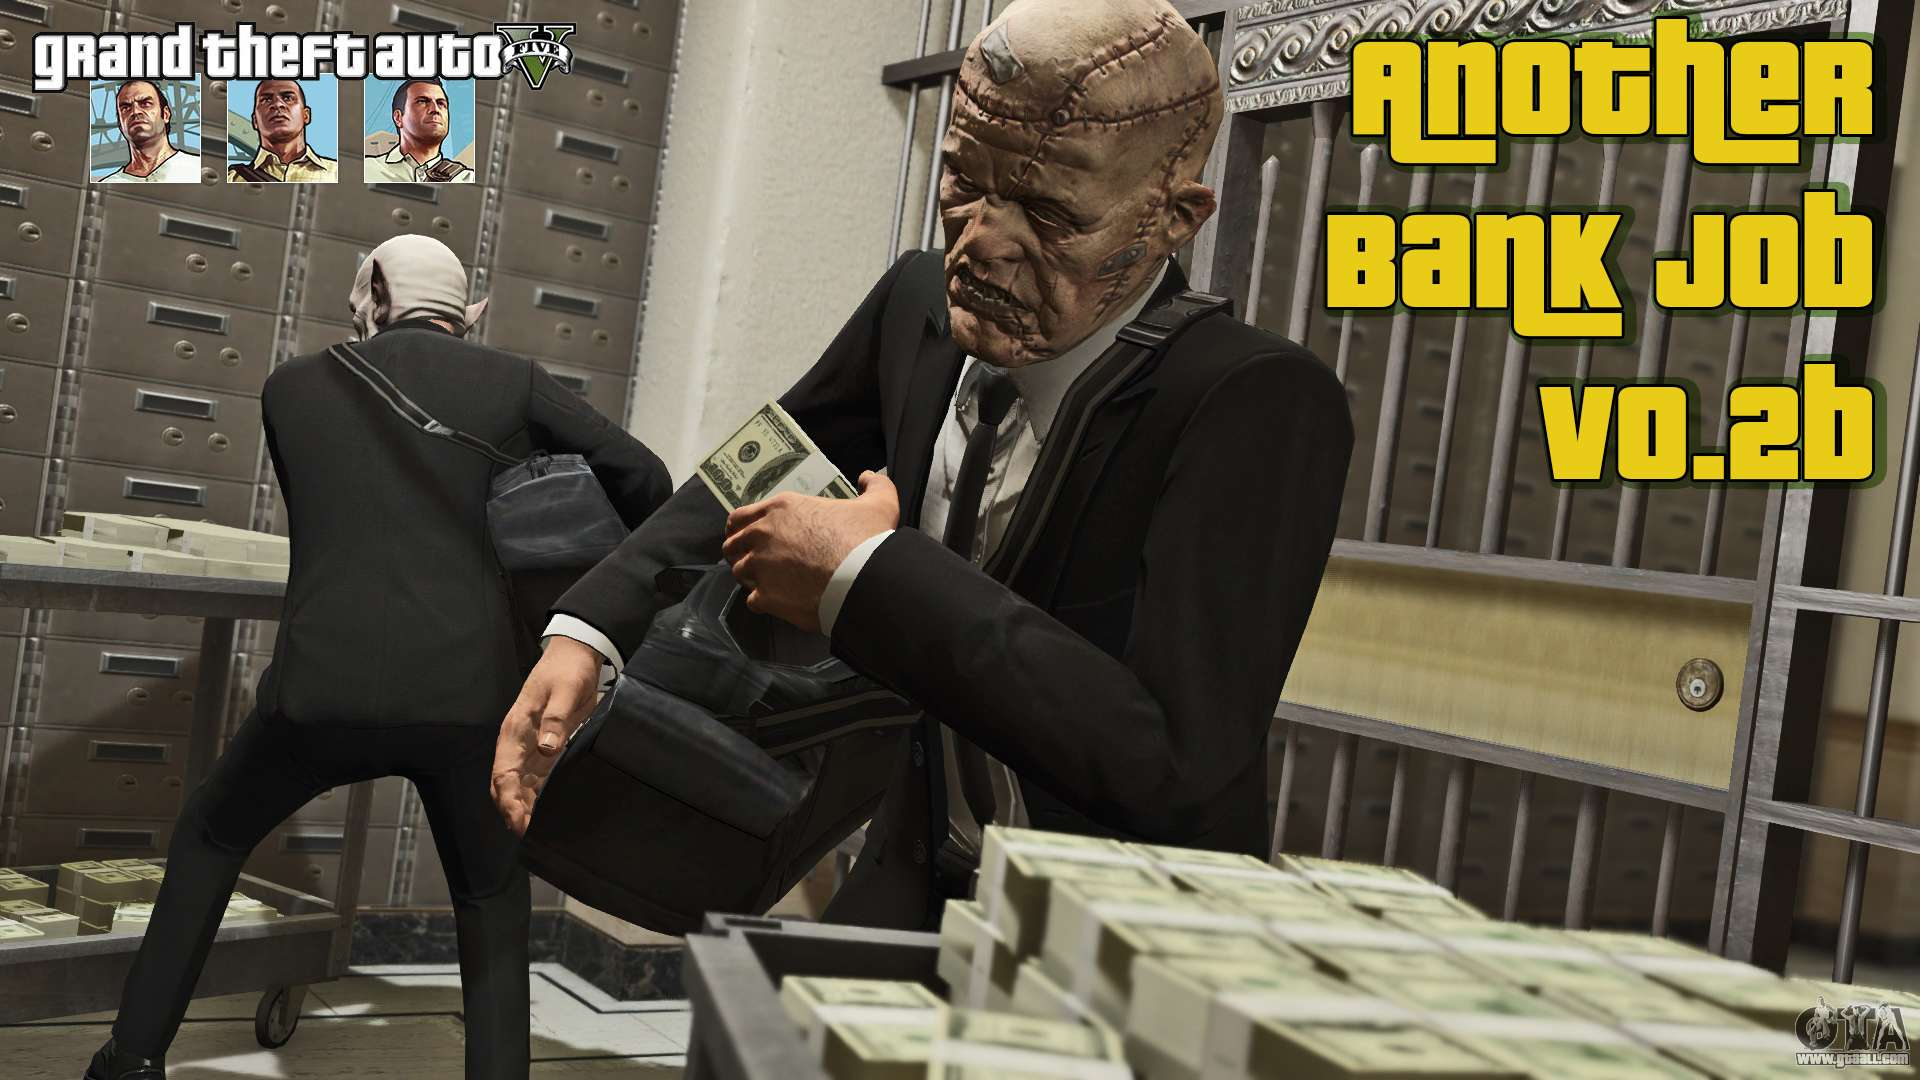 fast rc cars with 61773 Bank Robbery V02b on Image 2098989 furthermore 2015121801 in addition 435 Gta Iv Hud as well Samsung Remote Control Tm1240a Bn59 01180a Bn59 01180a likewise 64668 Tsunami.